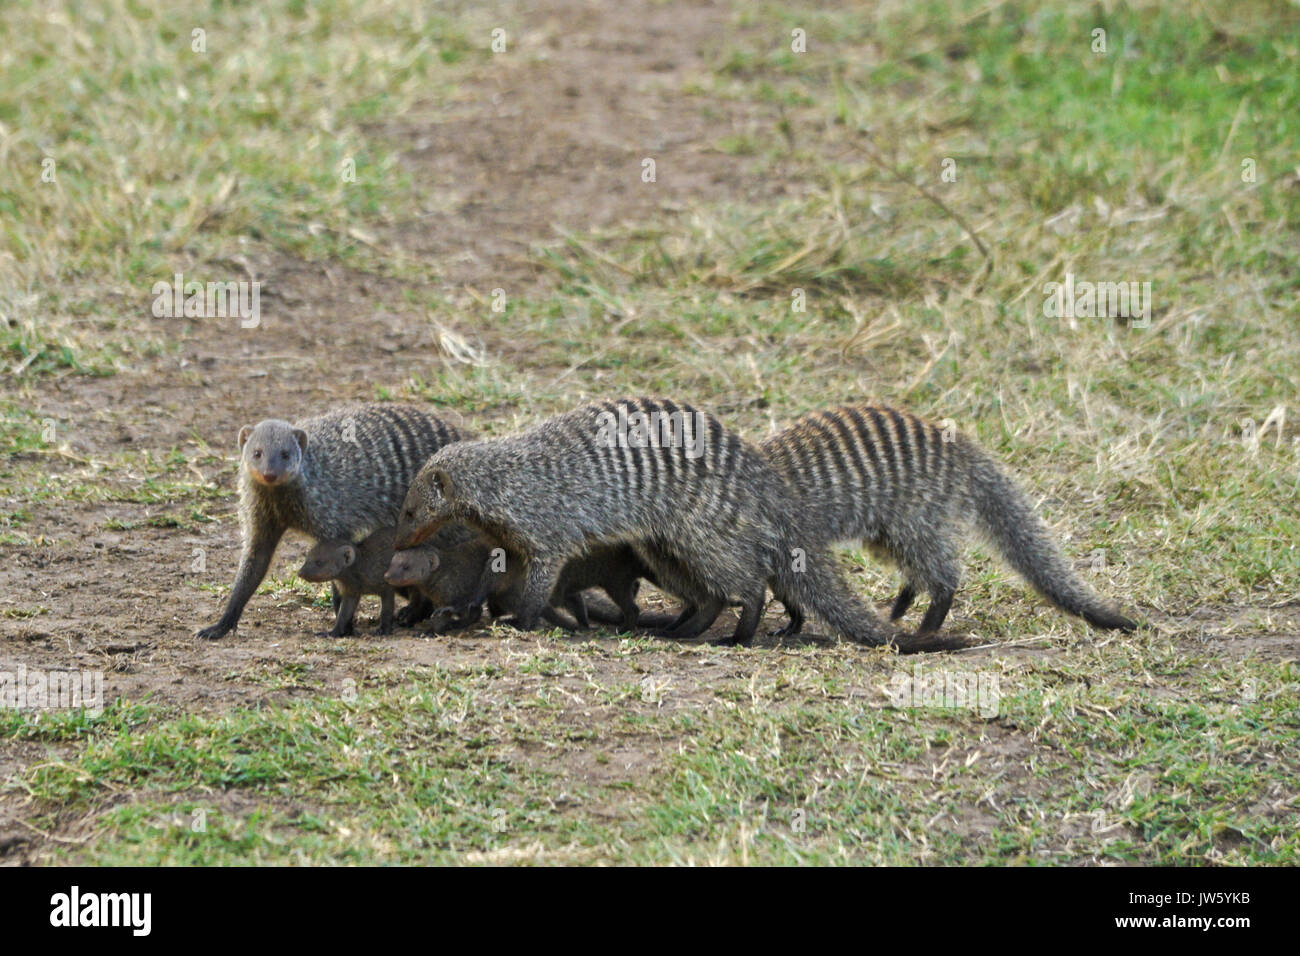 Banded mongooses protecting young from predators as they cross open area, Masai Mara Game Reserve, Kenya - Stock Image